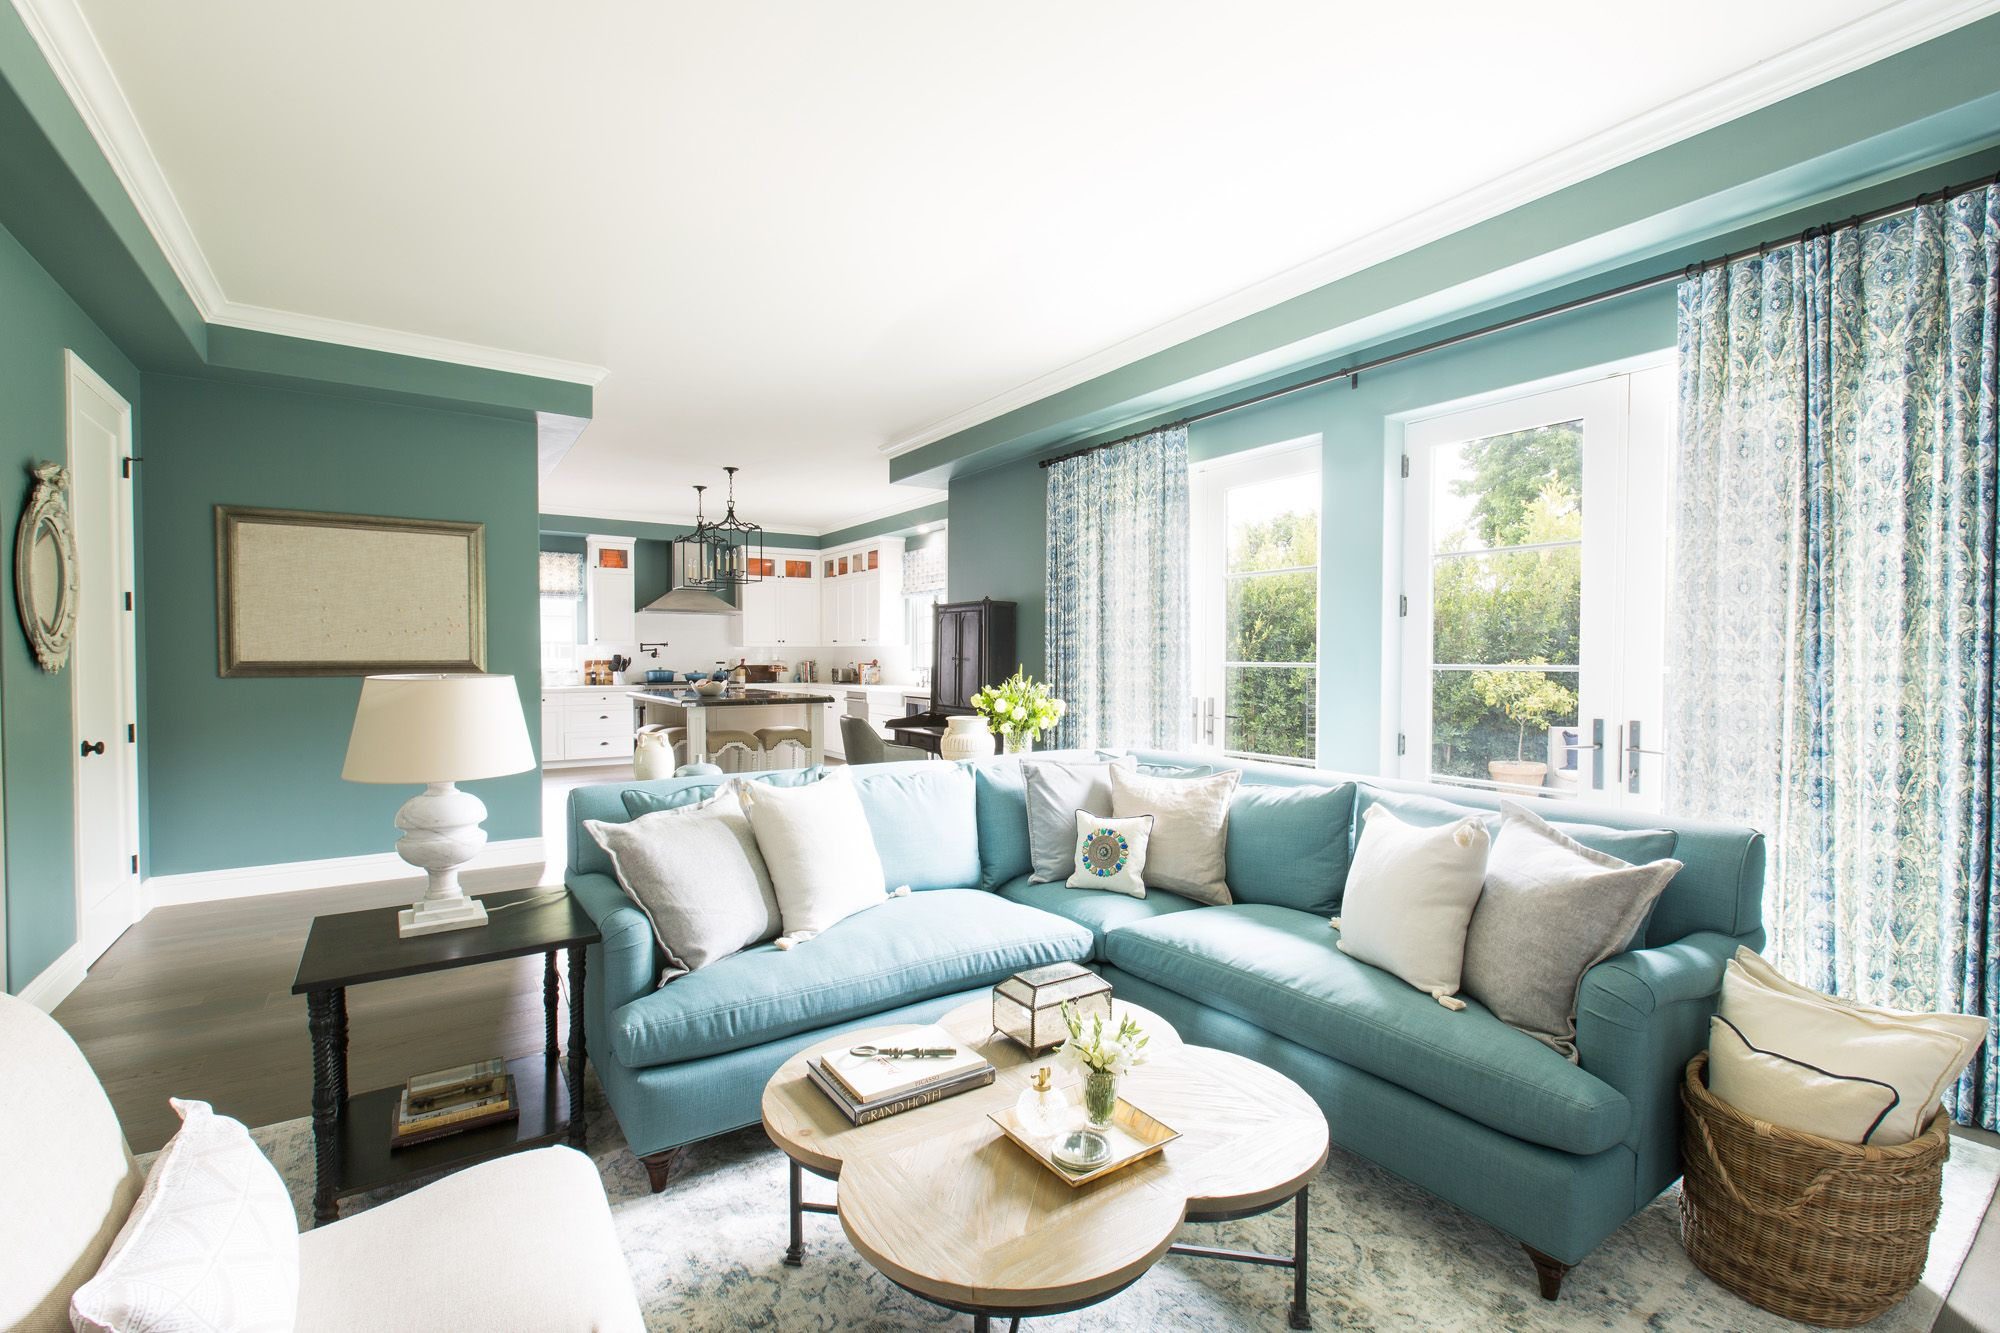 this stunning space came together in less than three months